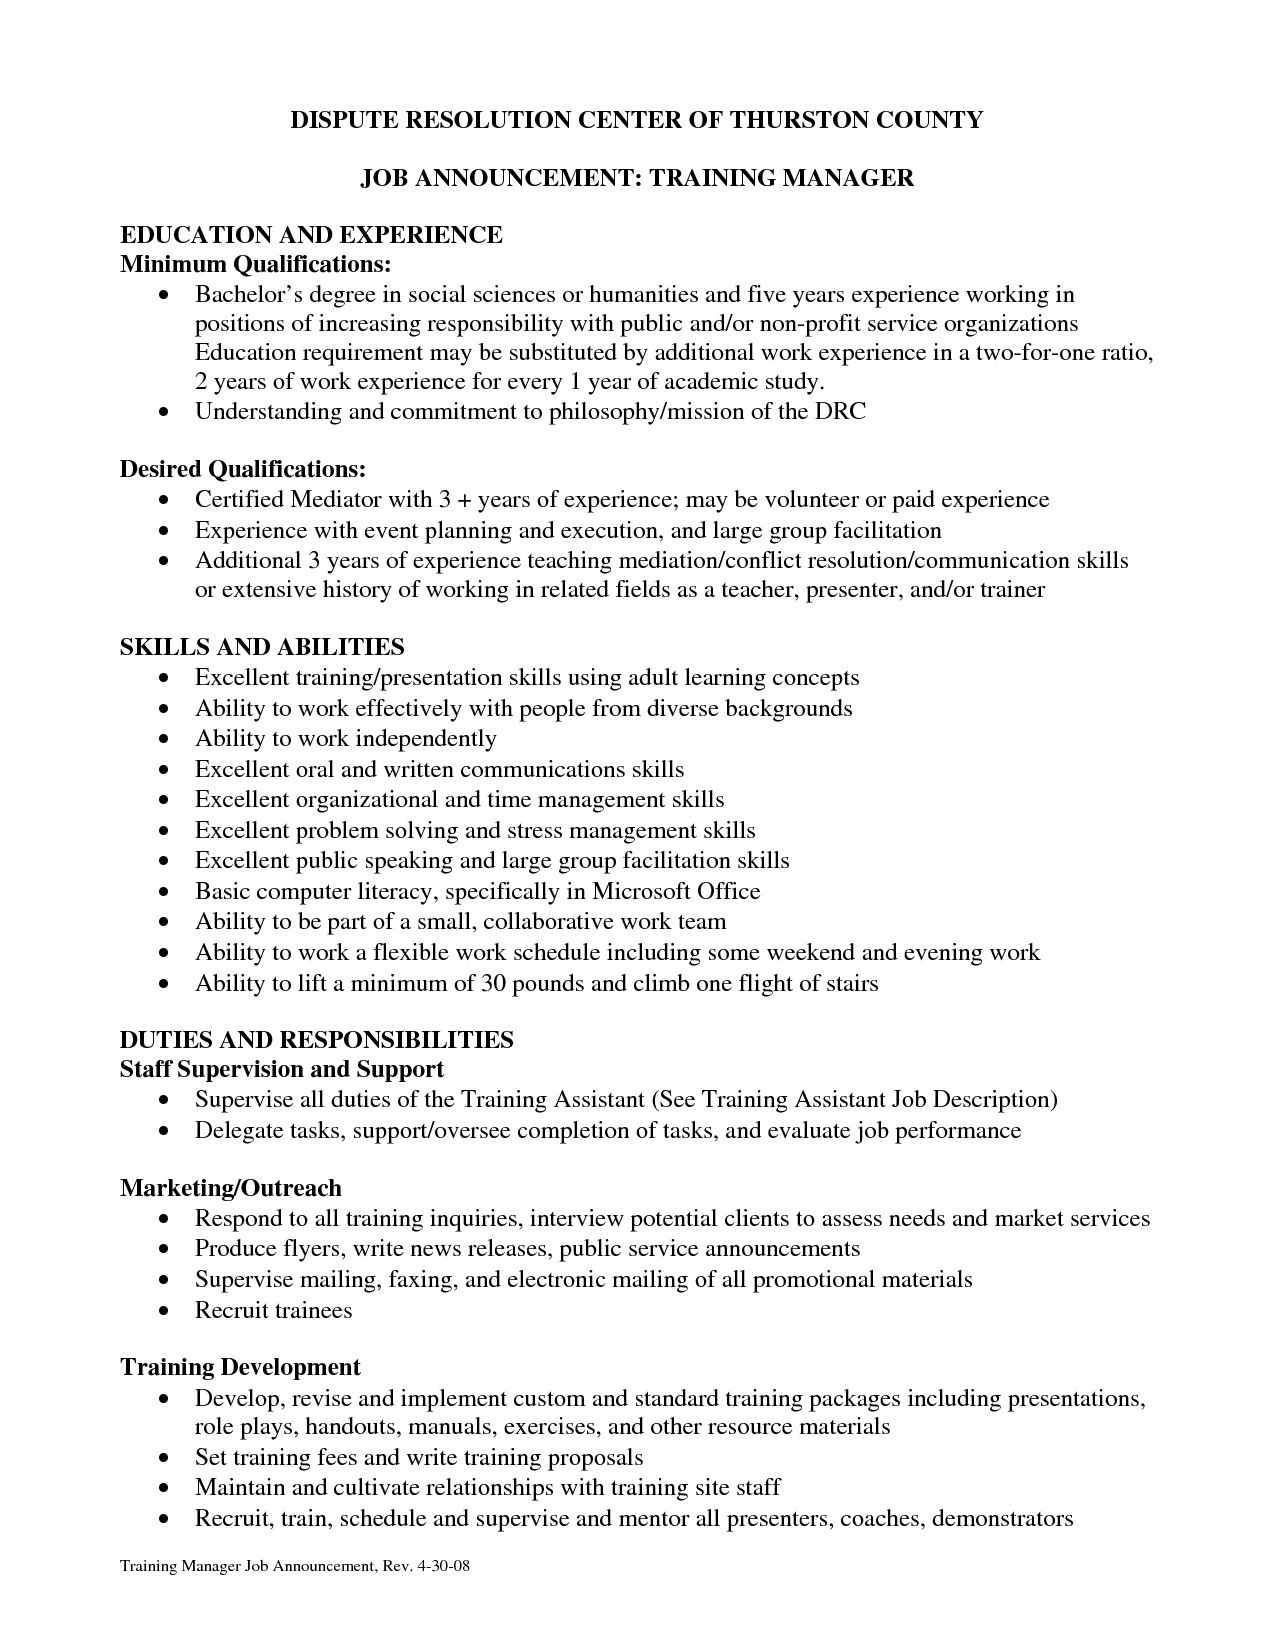 Training Coordinator Resume Cover Letter   Training Coordinator Resume Cover  Letter We Provide As Reference To Make Correct And Good Quality Resume.